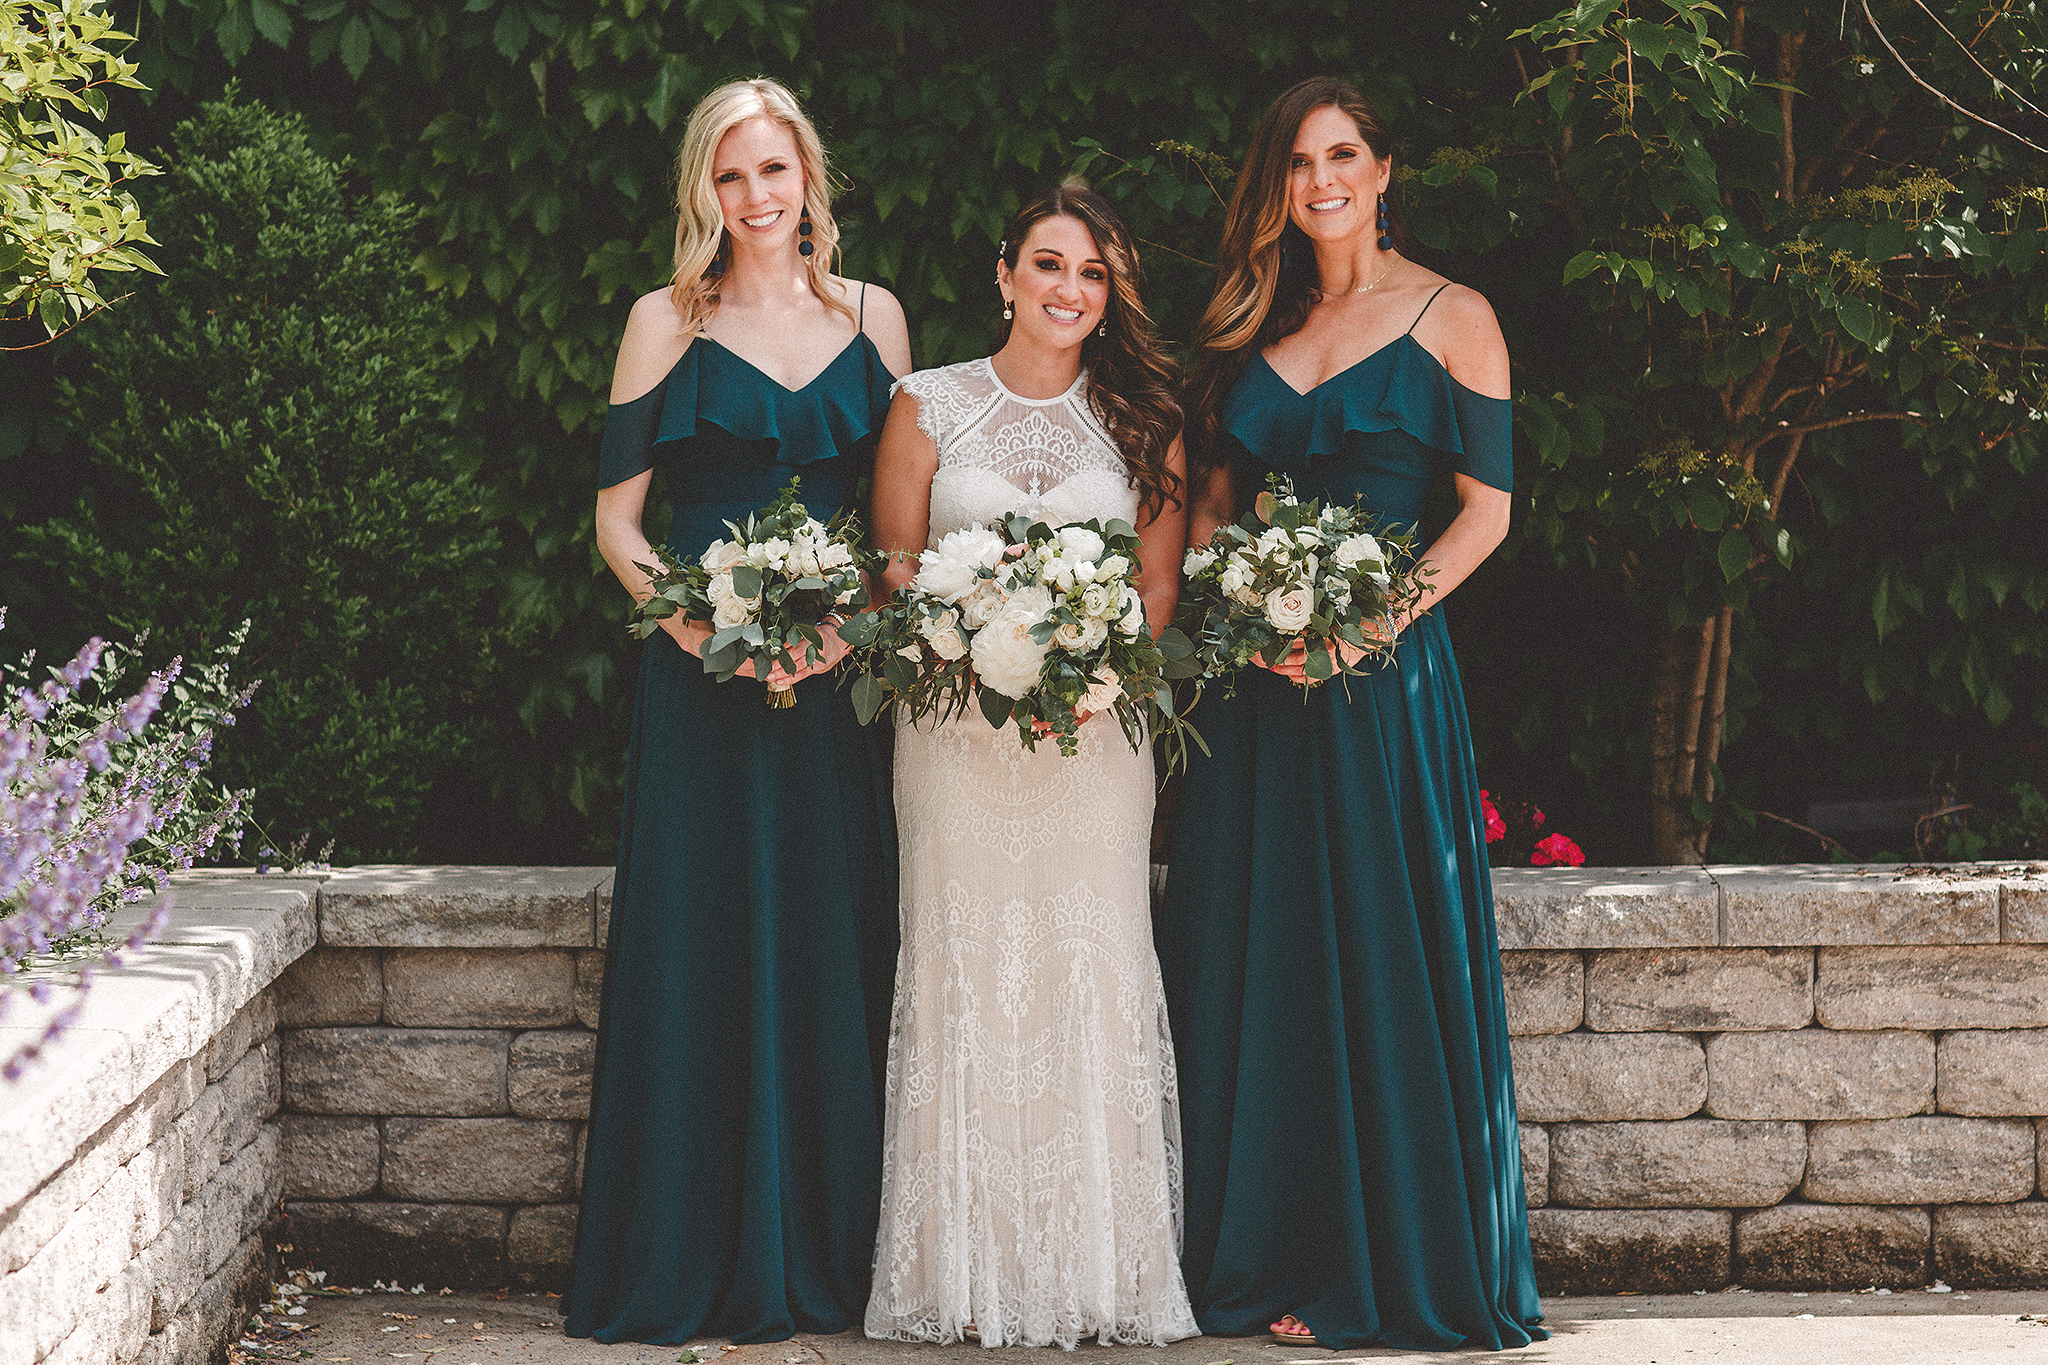 bride/bridesmaids picture | the ivy house milwaukee wedding photographer | chrissy deming